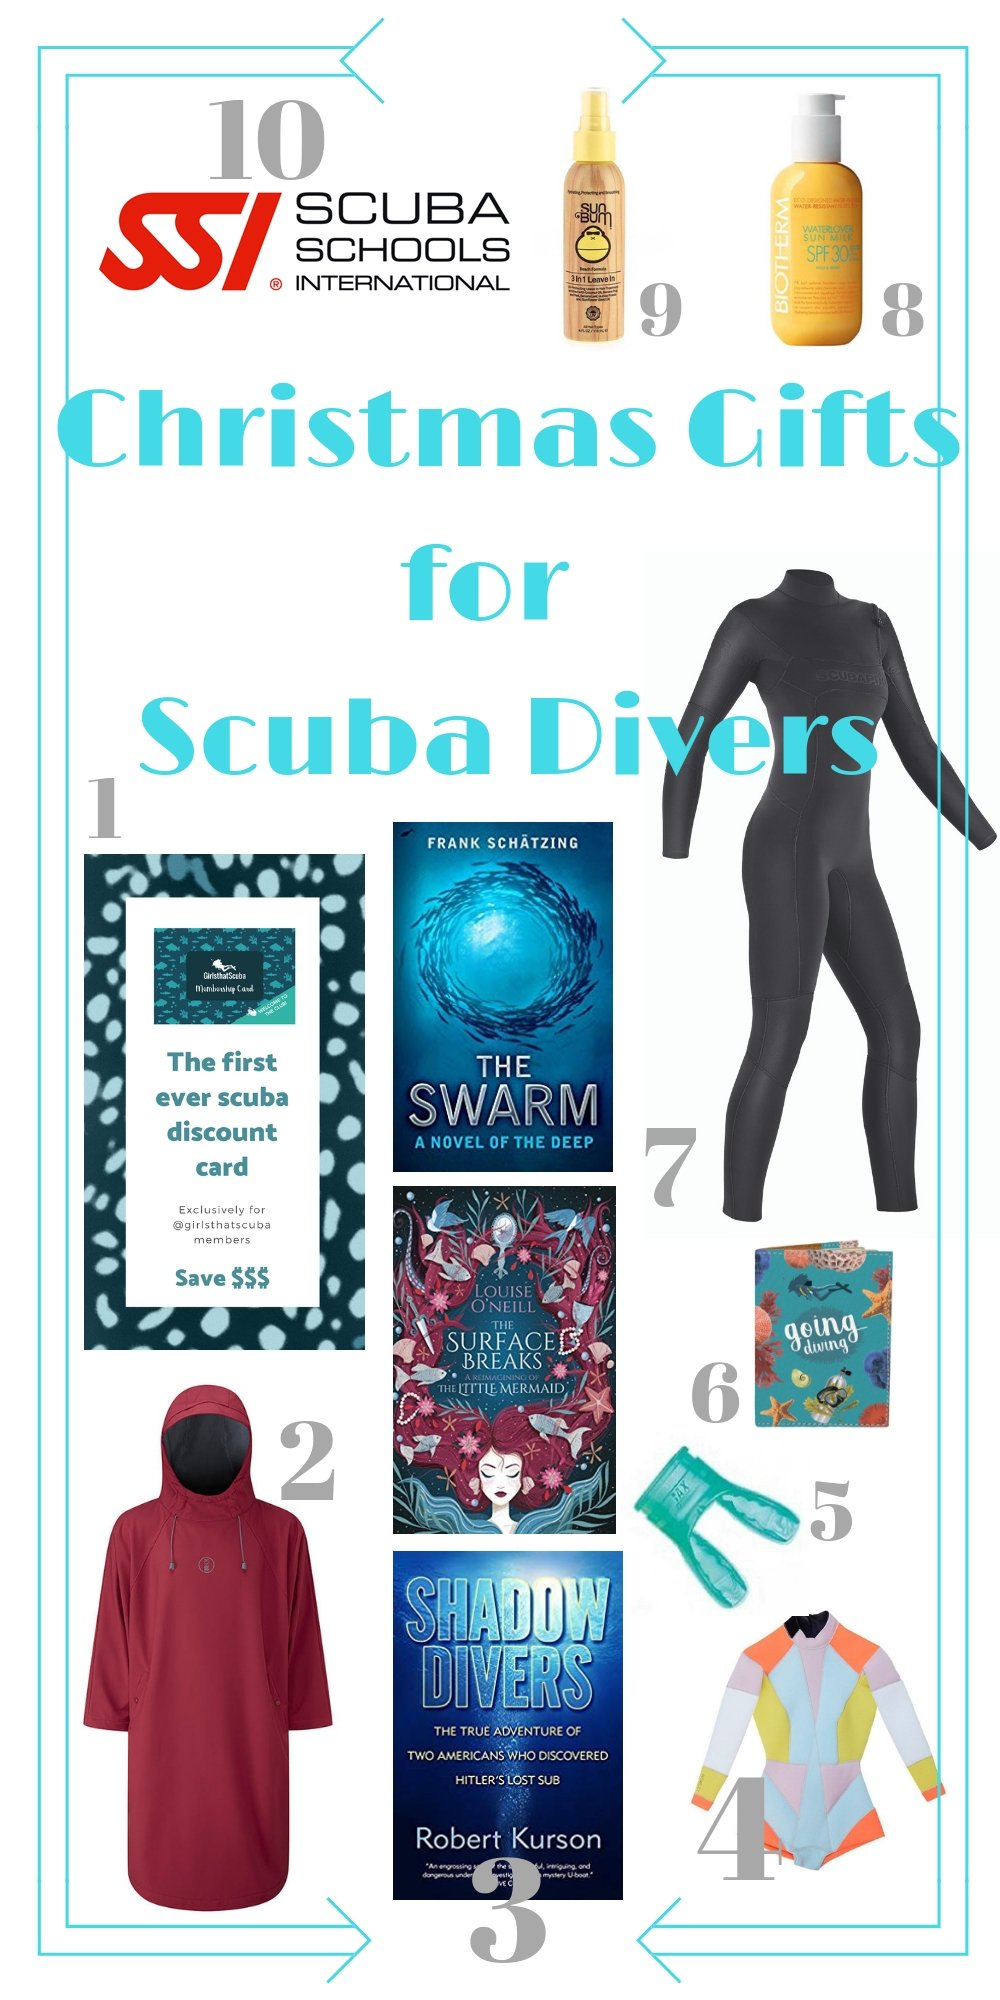 If you are looking for a present for the mermaid in your life I got some ideas for you: great gifts for scuba divers. From cool eco-friendly wetsuits to scuba books find the right scuba gift here.